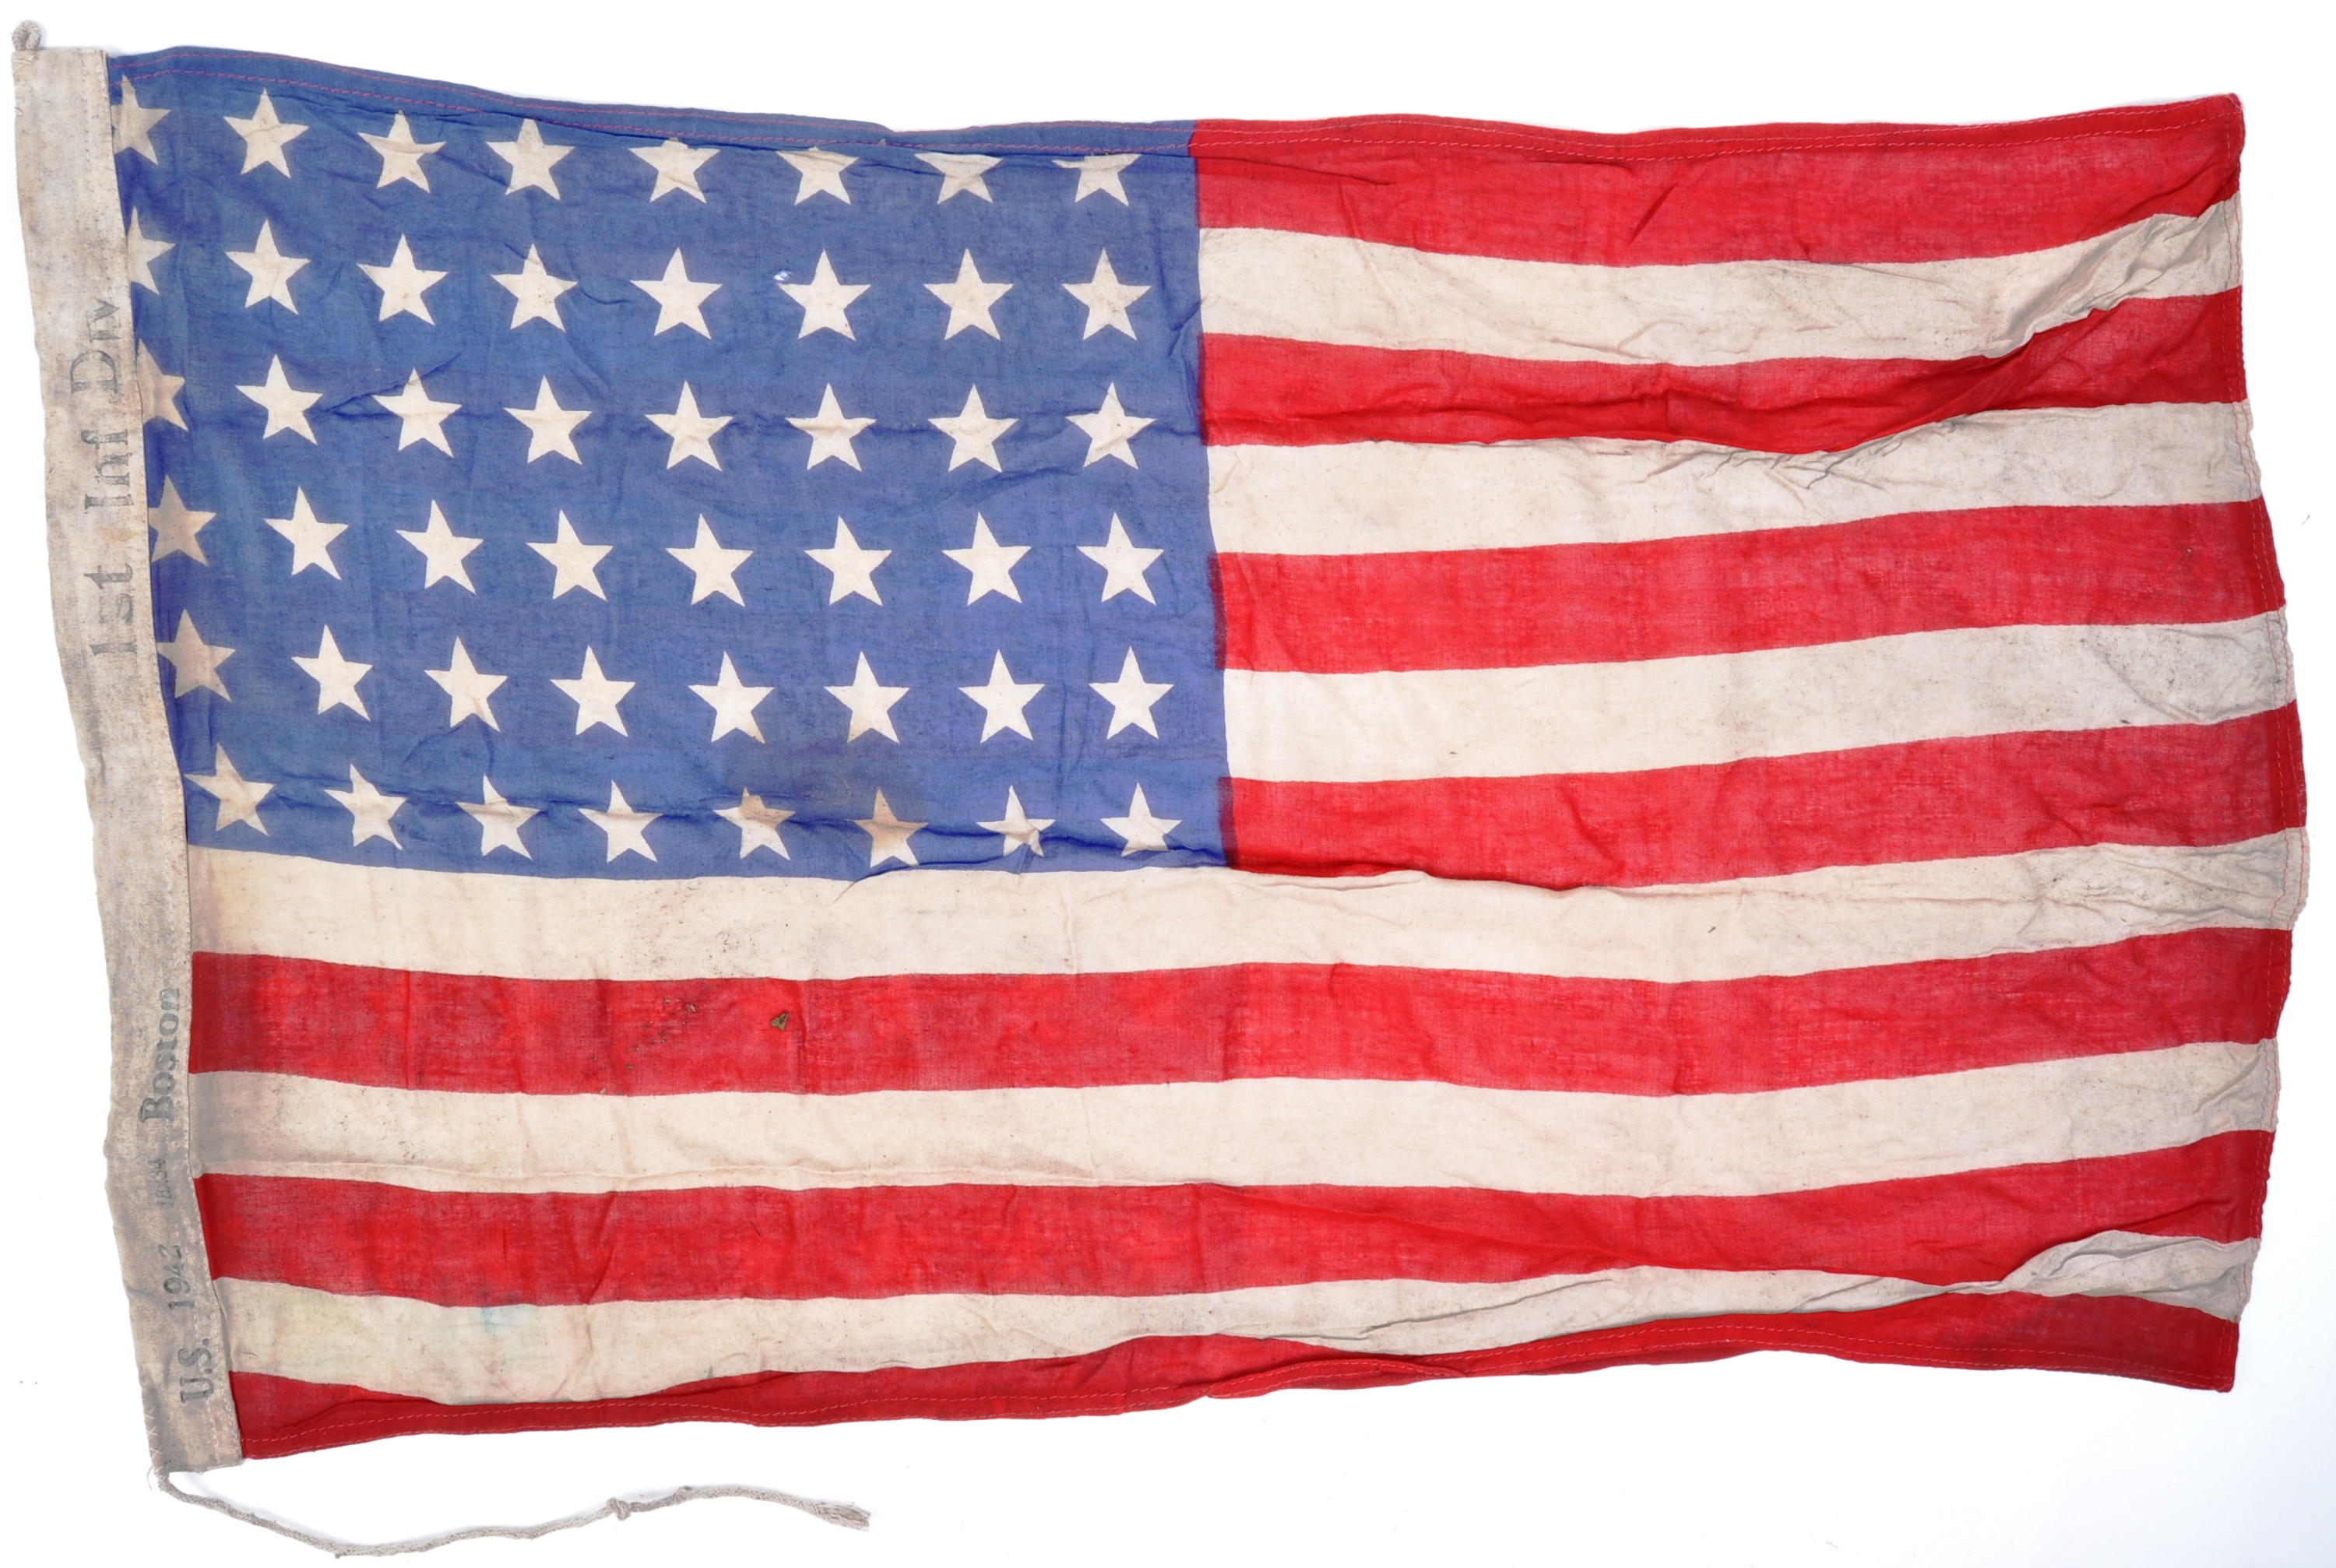 WWII SECOND WORLD WAR INTEREST FLAG - 1942 US ARMY DATED